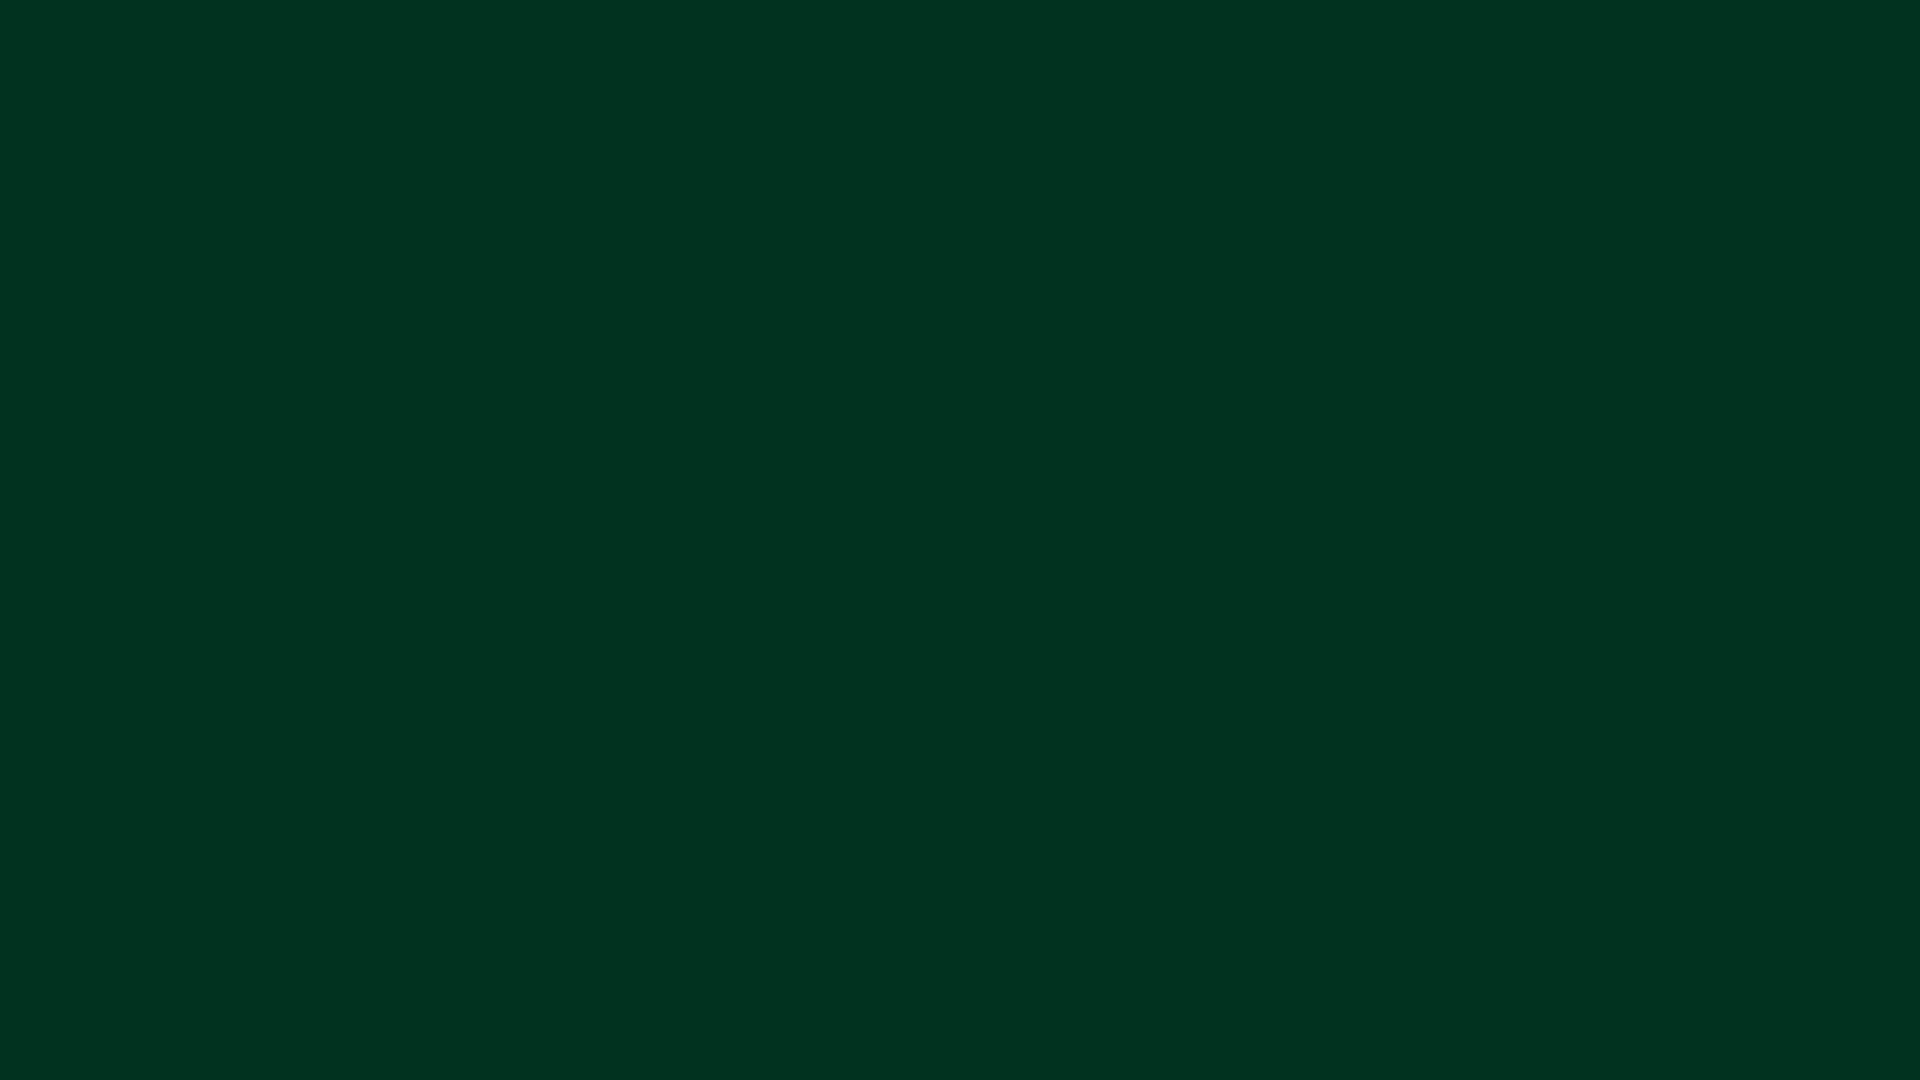 Green solid color background view and download the below background 1920x1080